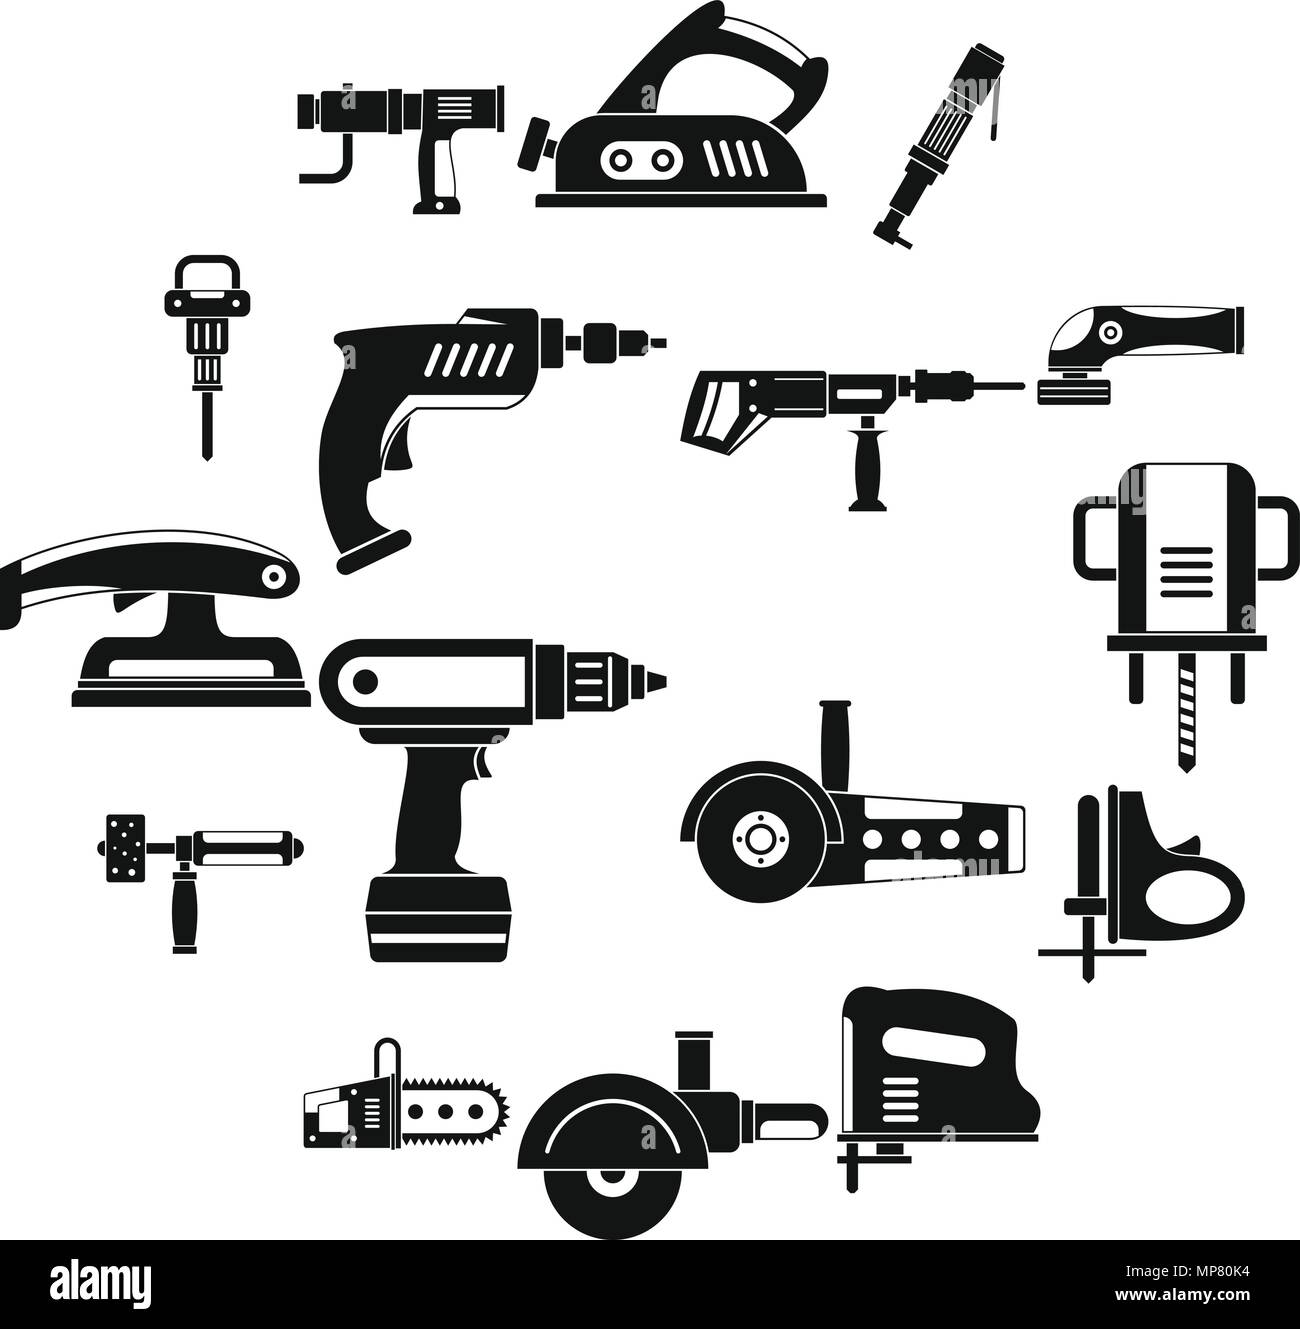 Electric tools icons set, simple style - Stock Image